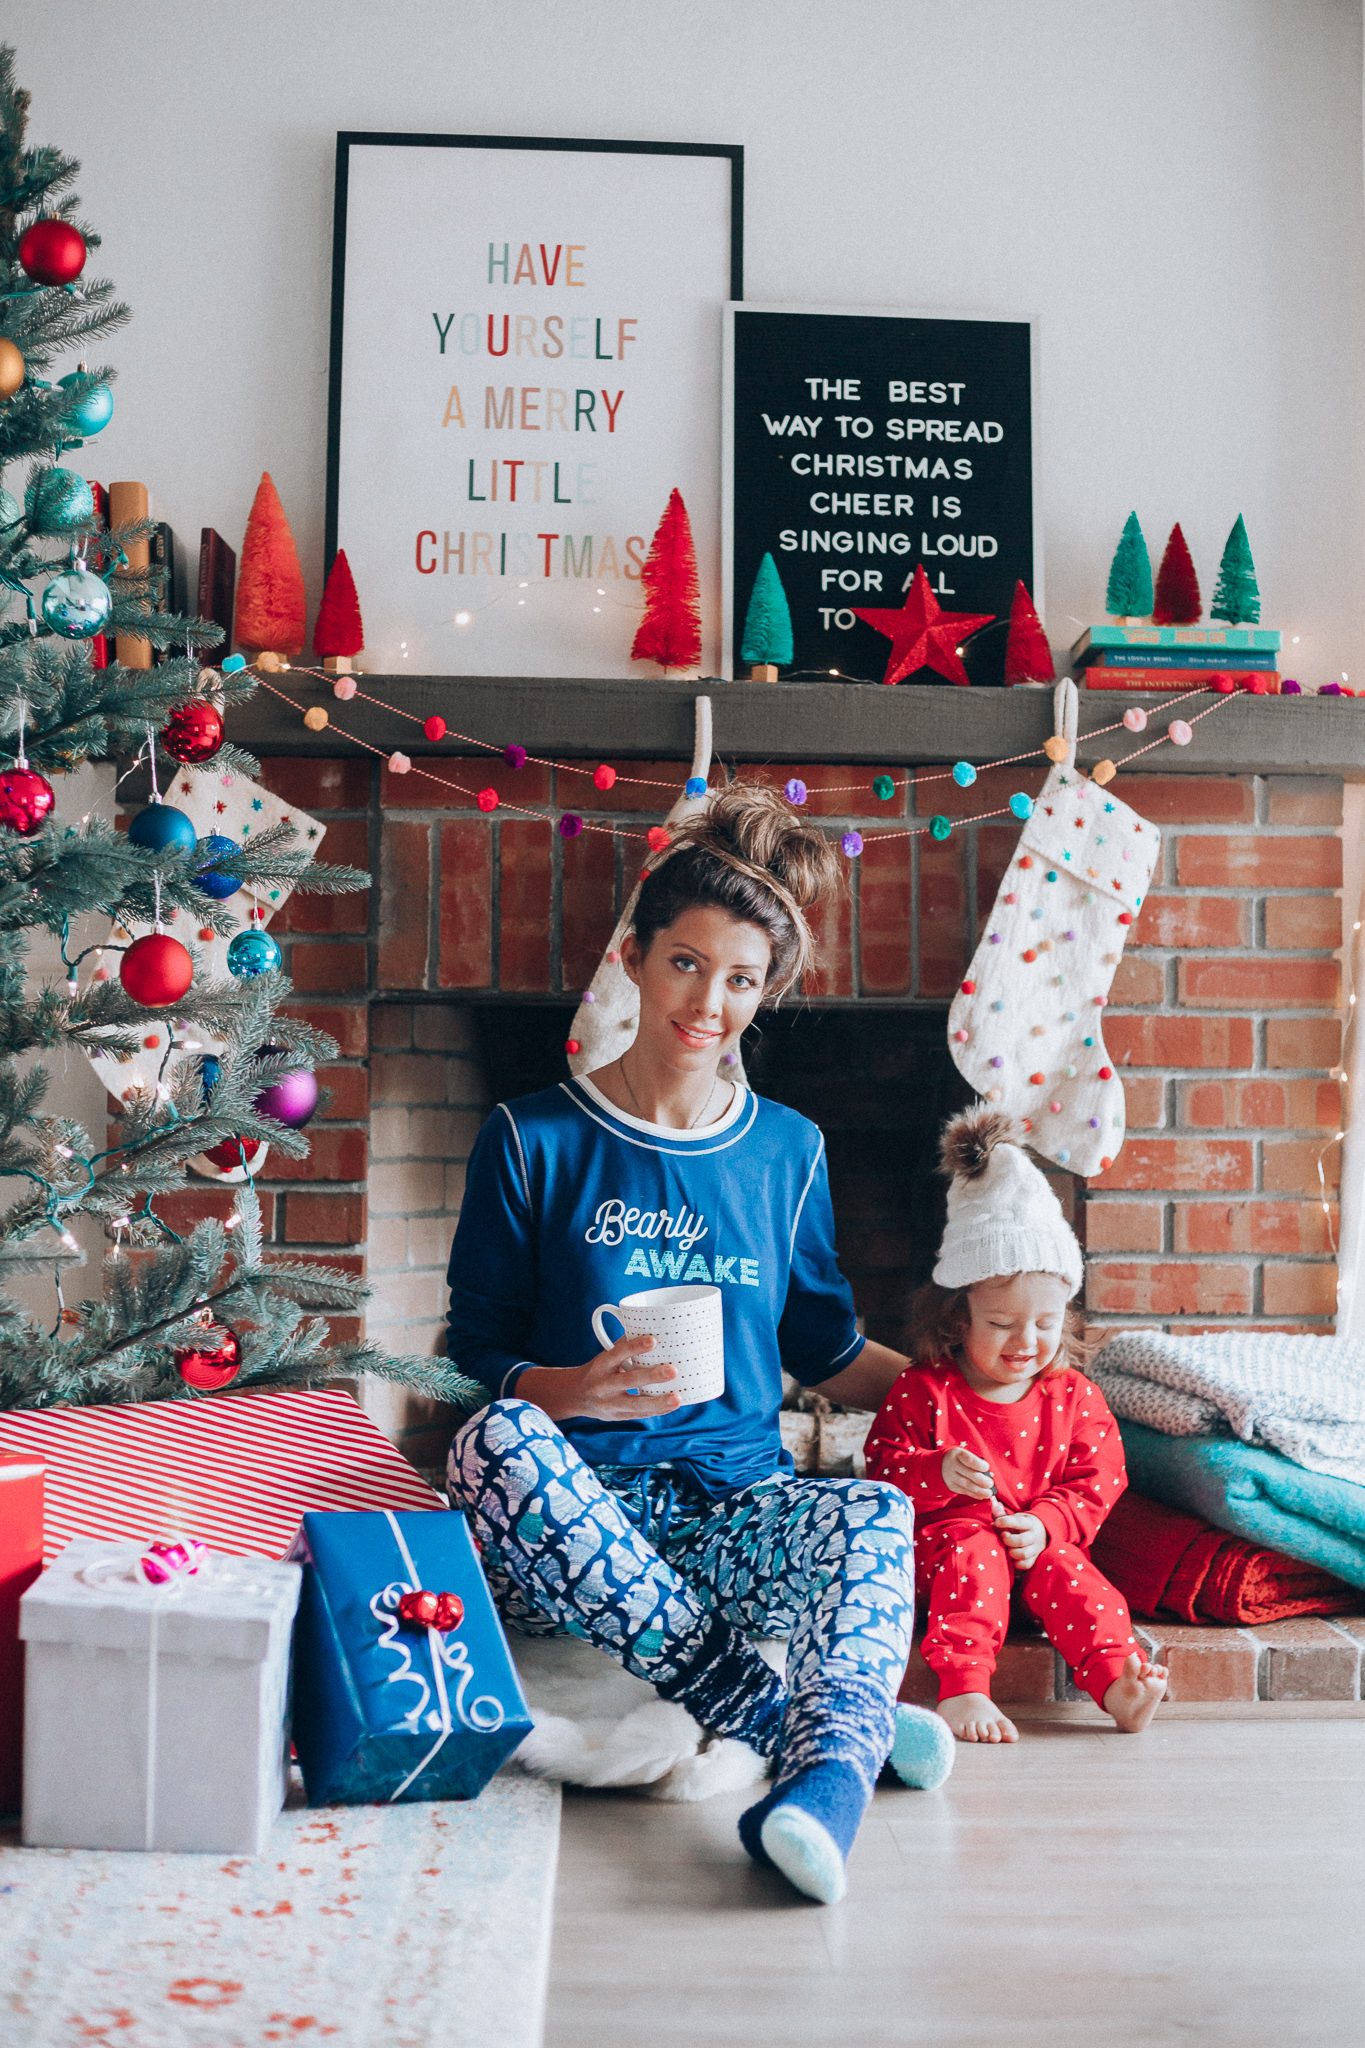 Qvc Home Decor Coziest Christmas Pajamas With Cuddl Duds The Girl In